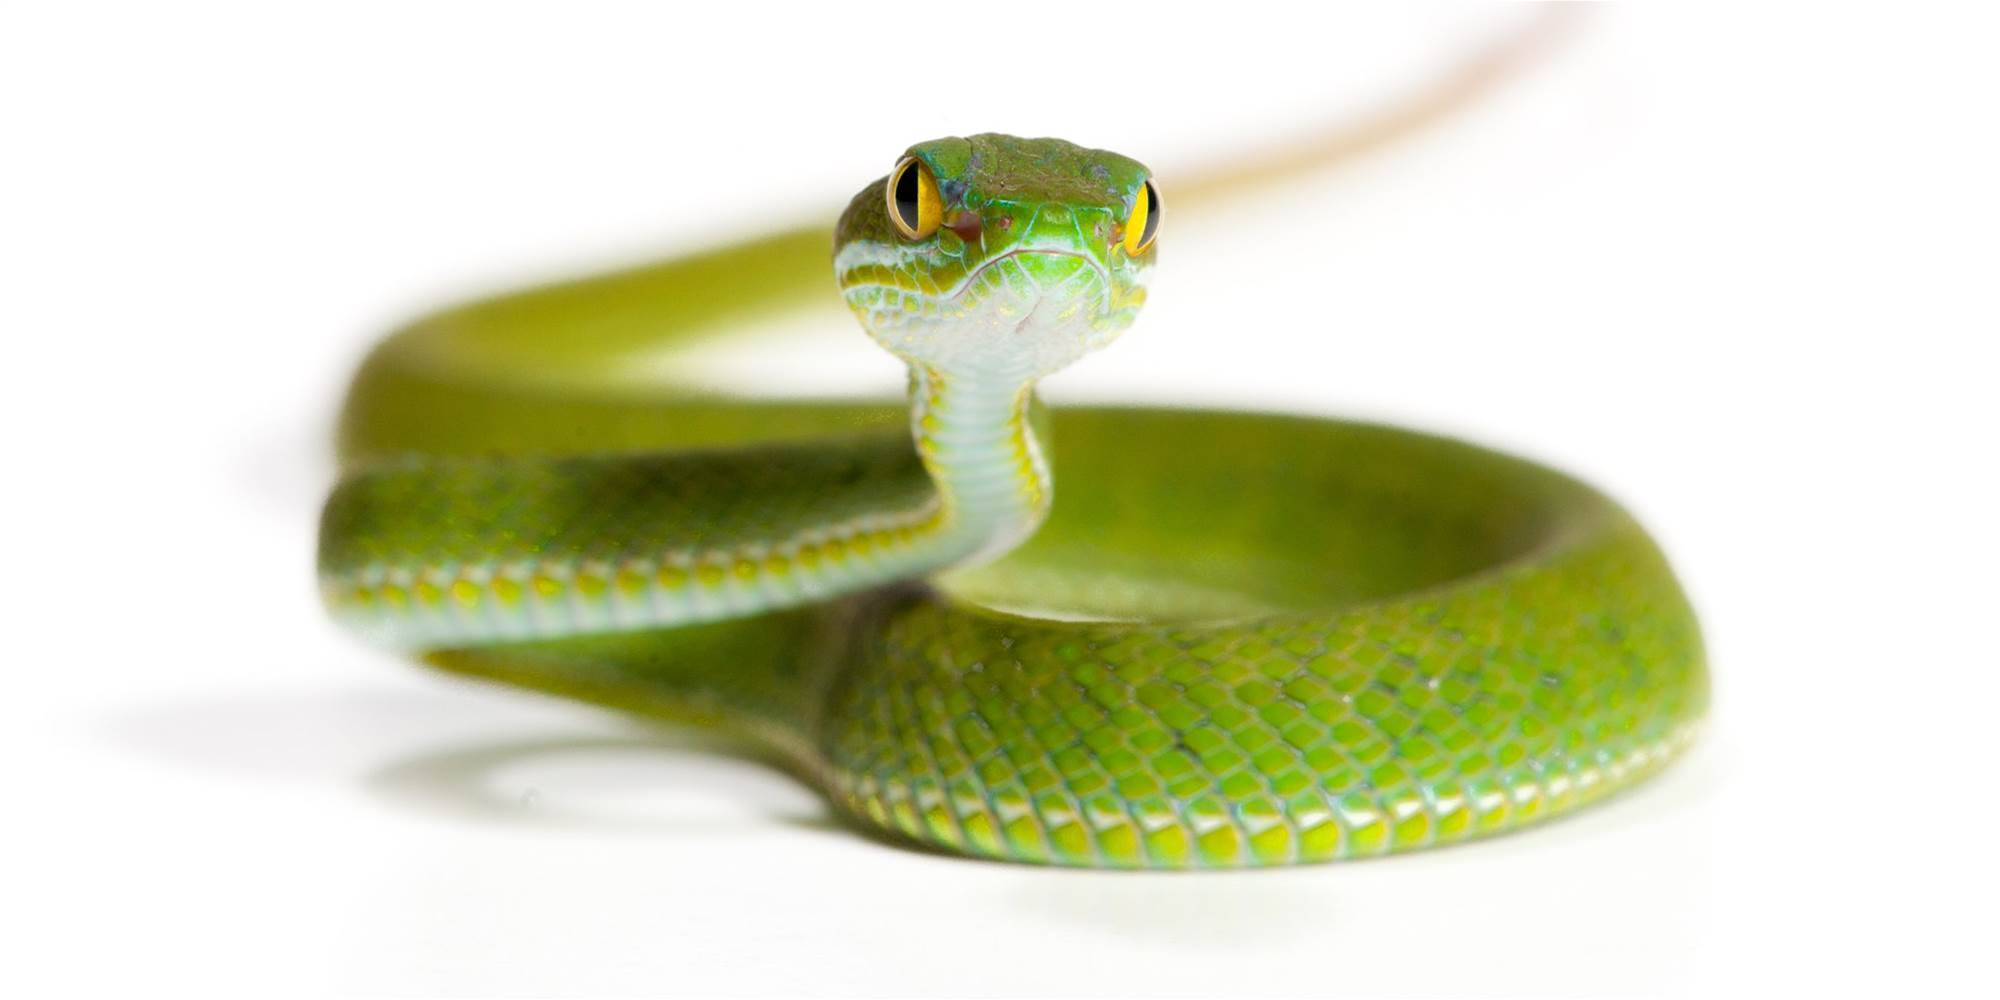 The Snake Diet Is the Latest Insane Weight Loss Trend You Definitely Should Not Try